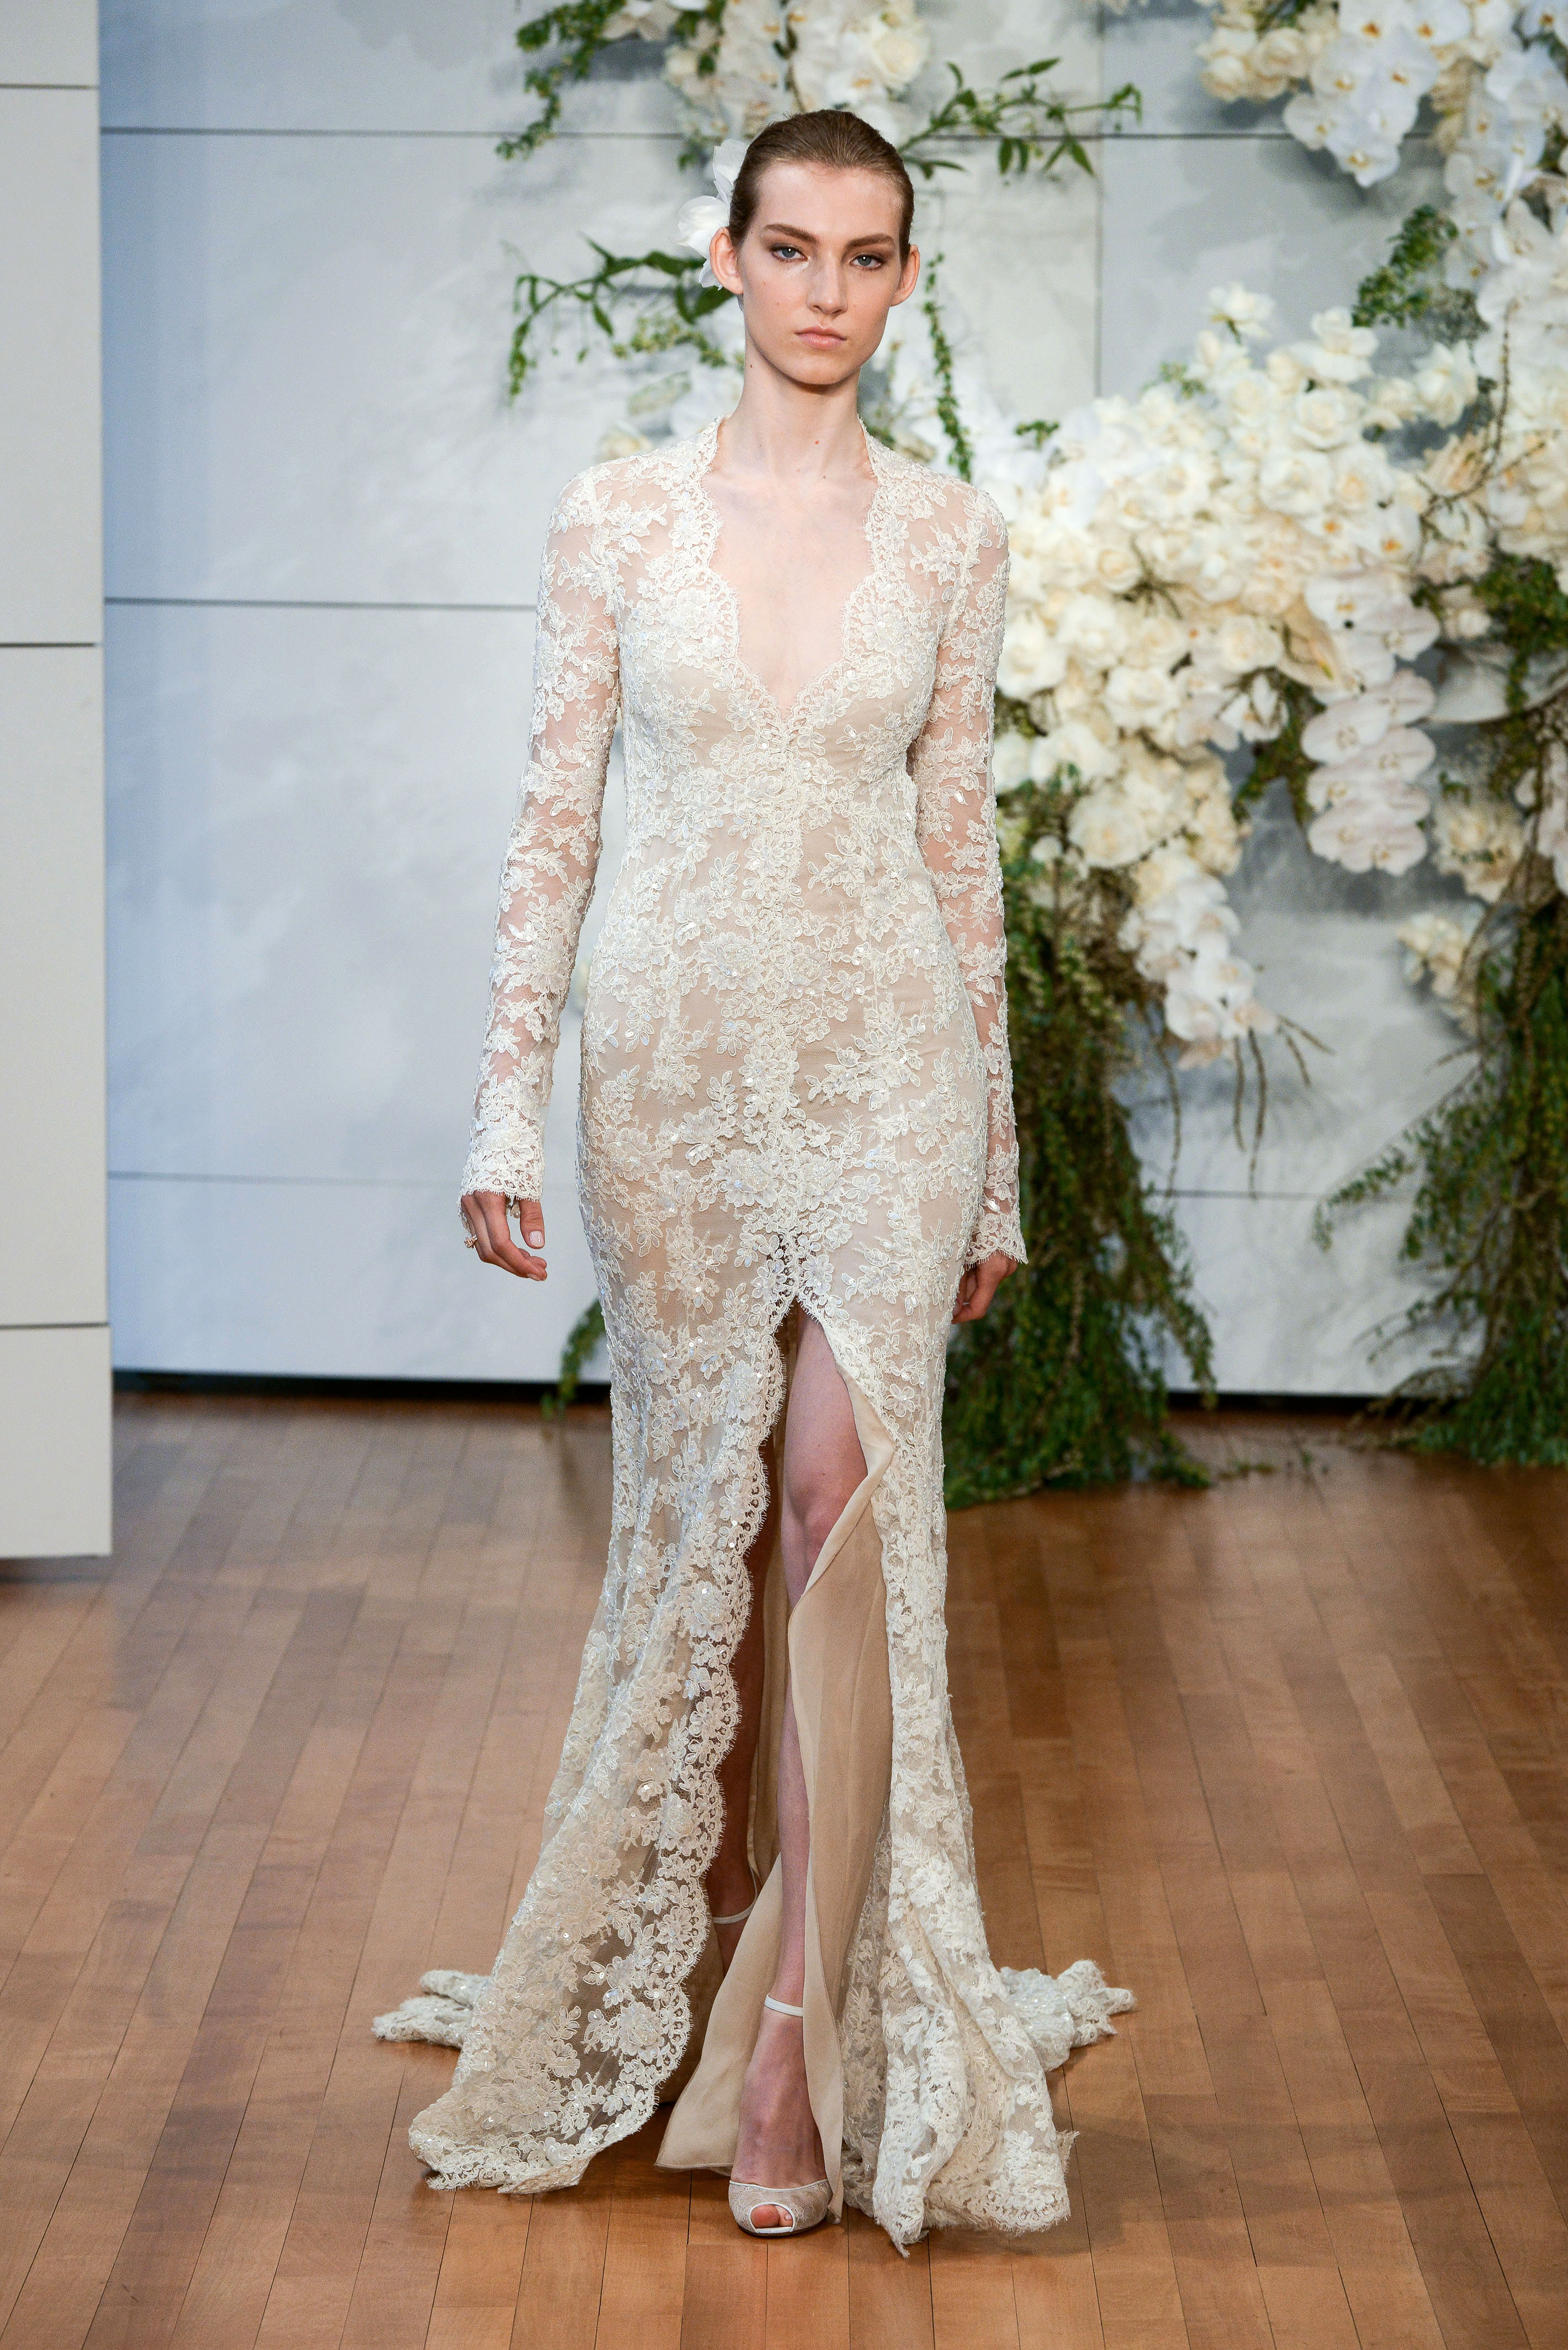 monique lhuillier long sleeves v-neck lace wedding dress spring 2018